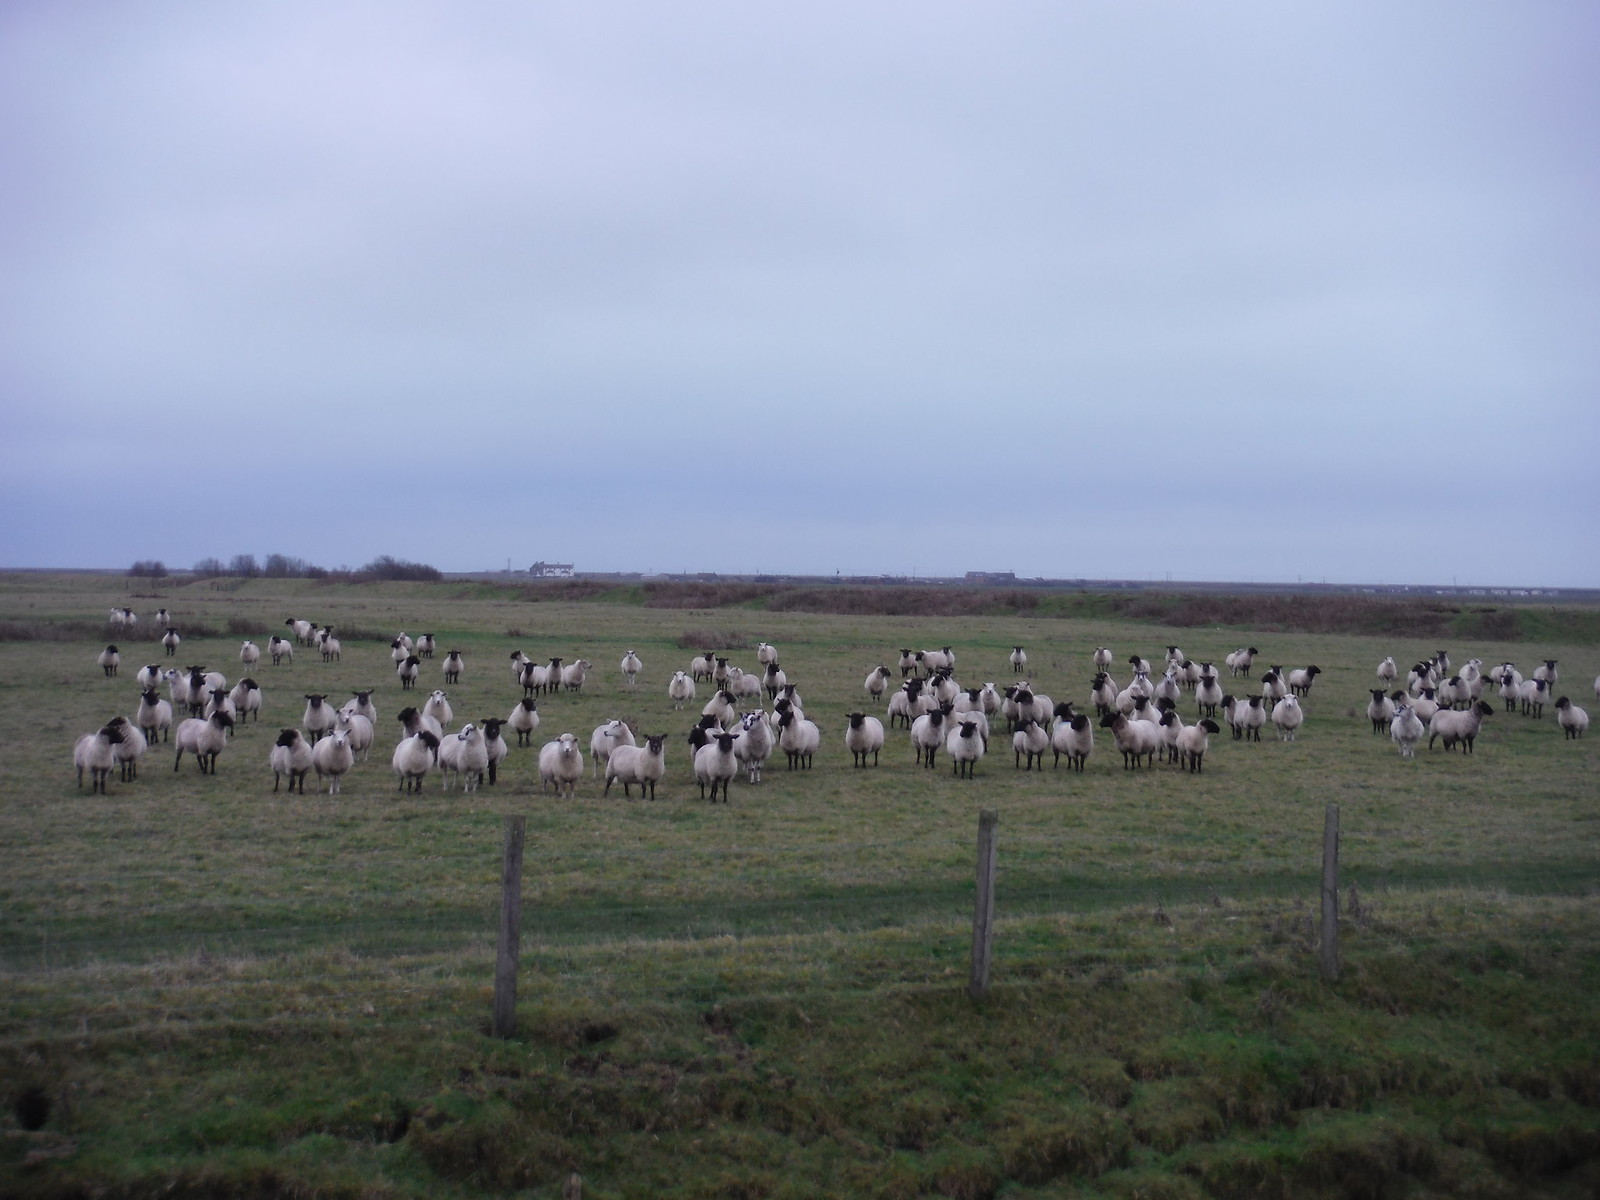 Sheep in Marsh SWC 154 - Rye to Dungeness and Lydd-on-Sea or Lydd or Circular (Rye Ending)